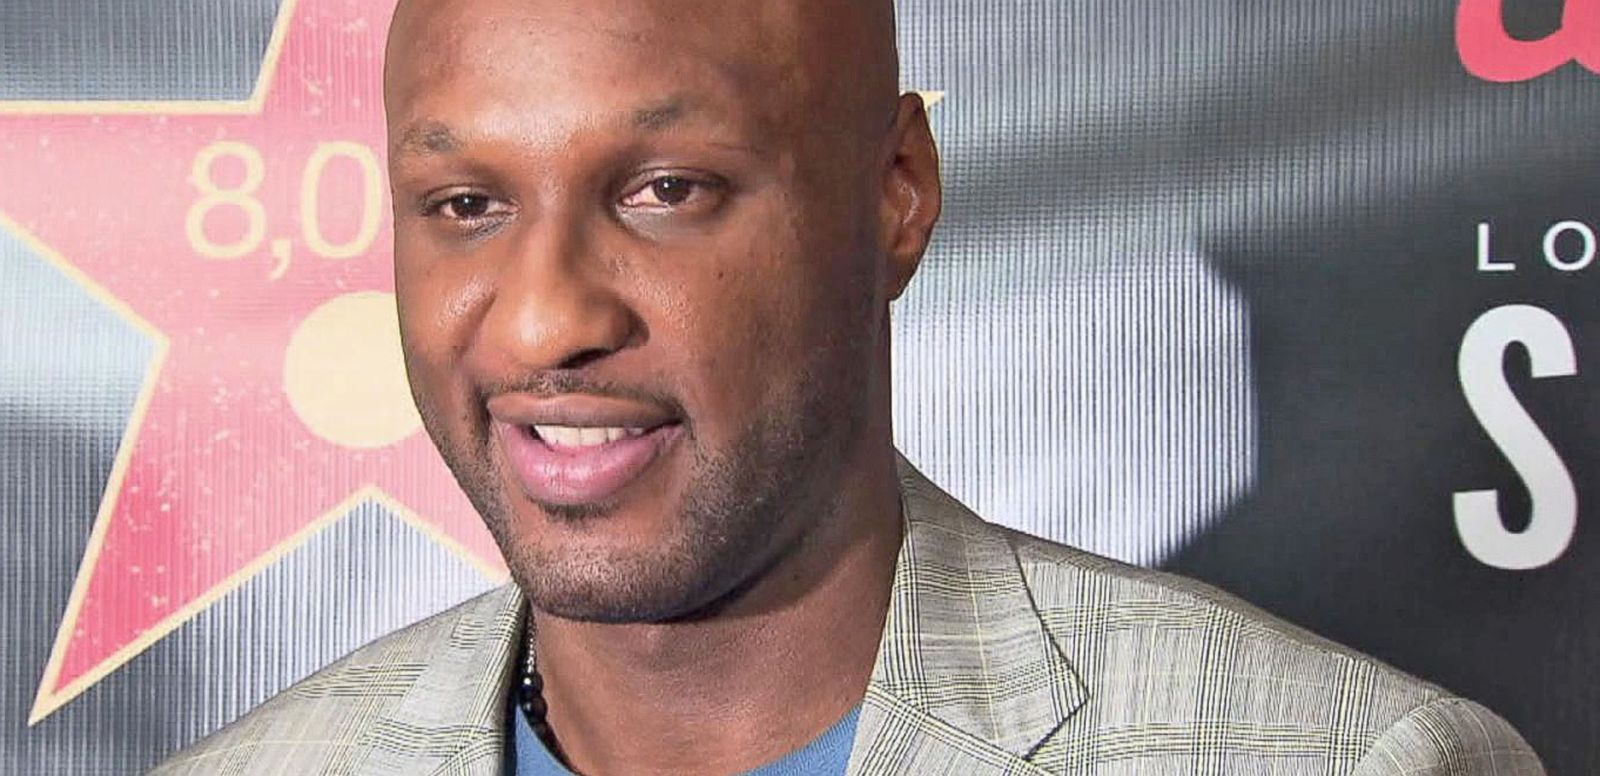 VIDEO: Lamar Odom Released From Hospital